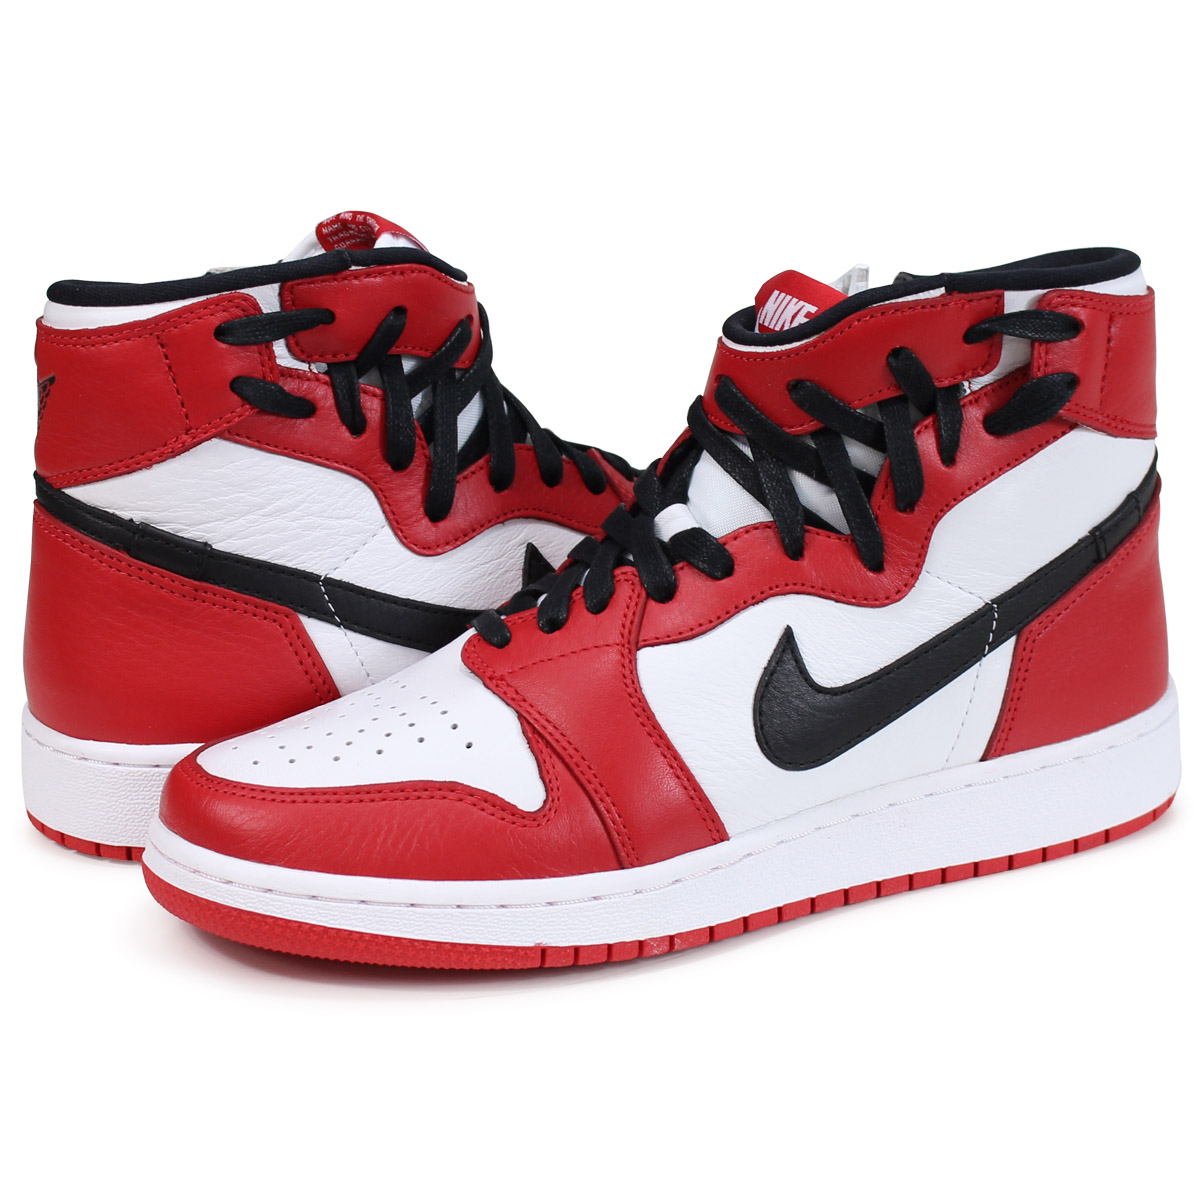 Shinnyu Xx 629 Sneakers Planned Load Product Air Rebel In Lady's Og Whiteload Wmns At4151 100 Reservation Jordan Nike 1 Nostalgic W29EIDH